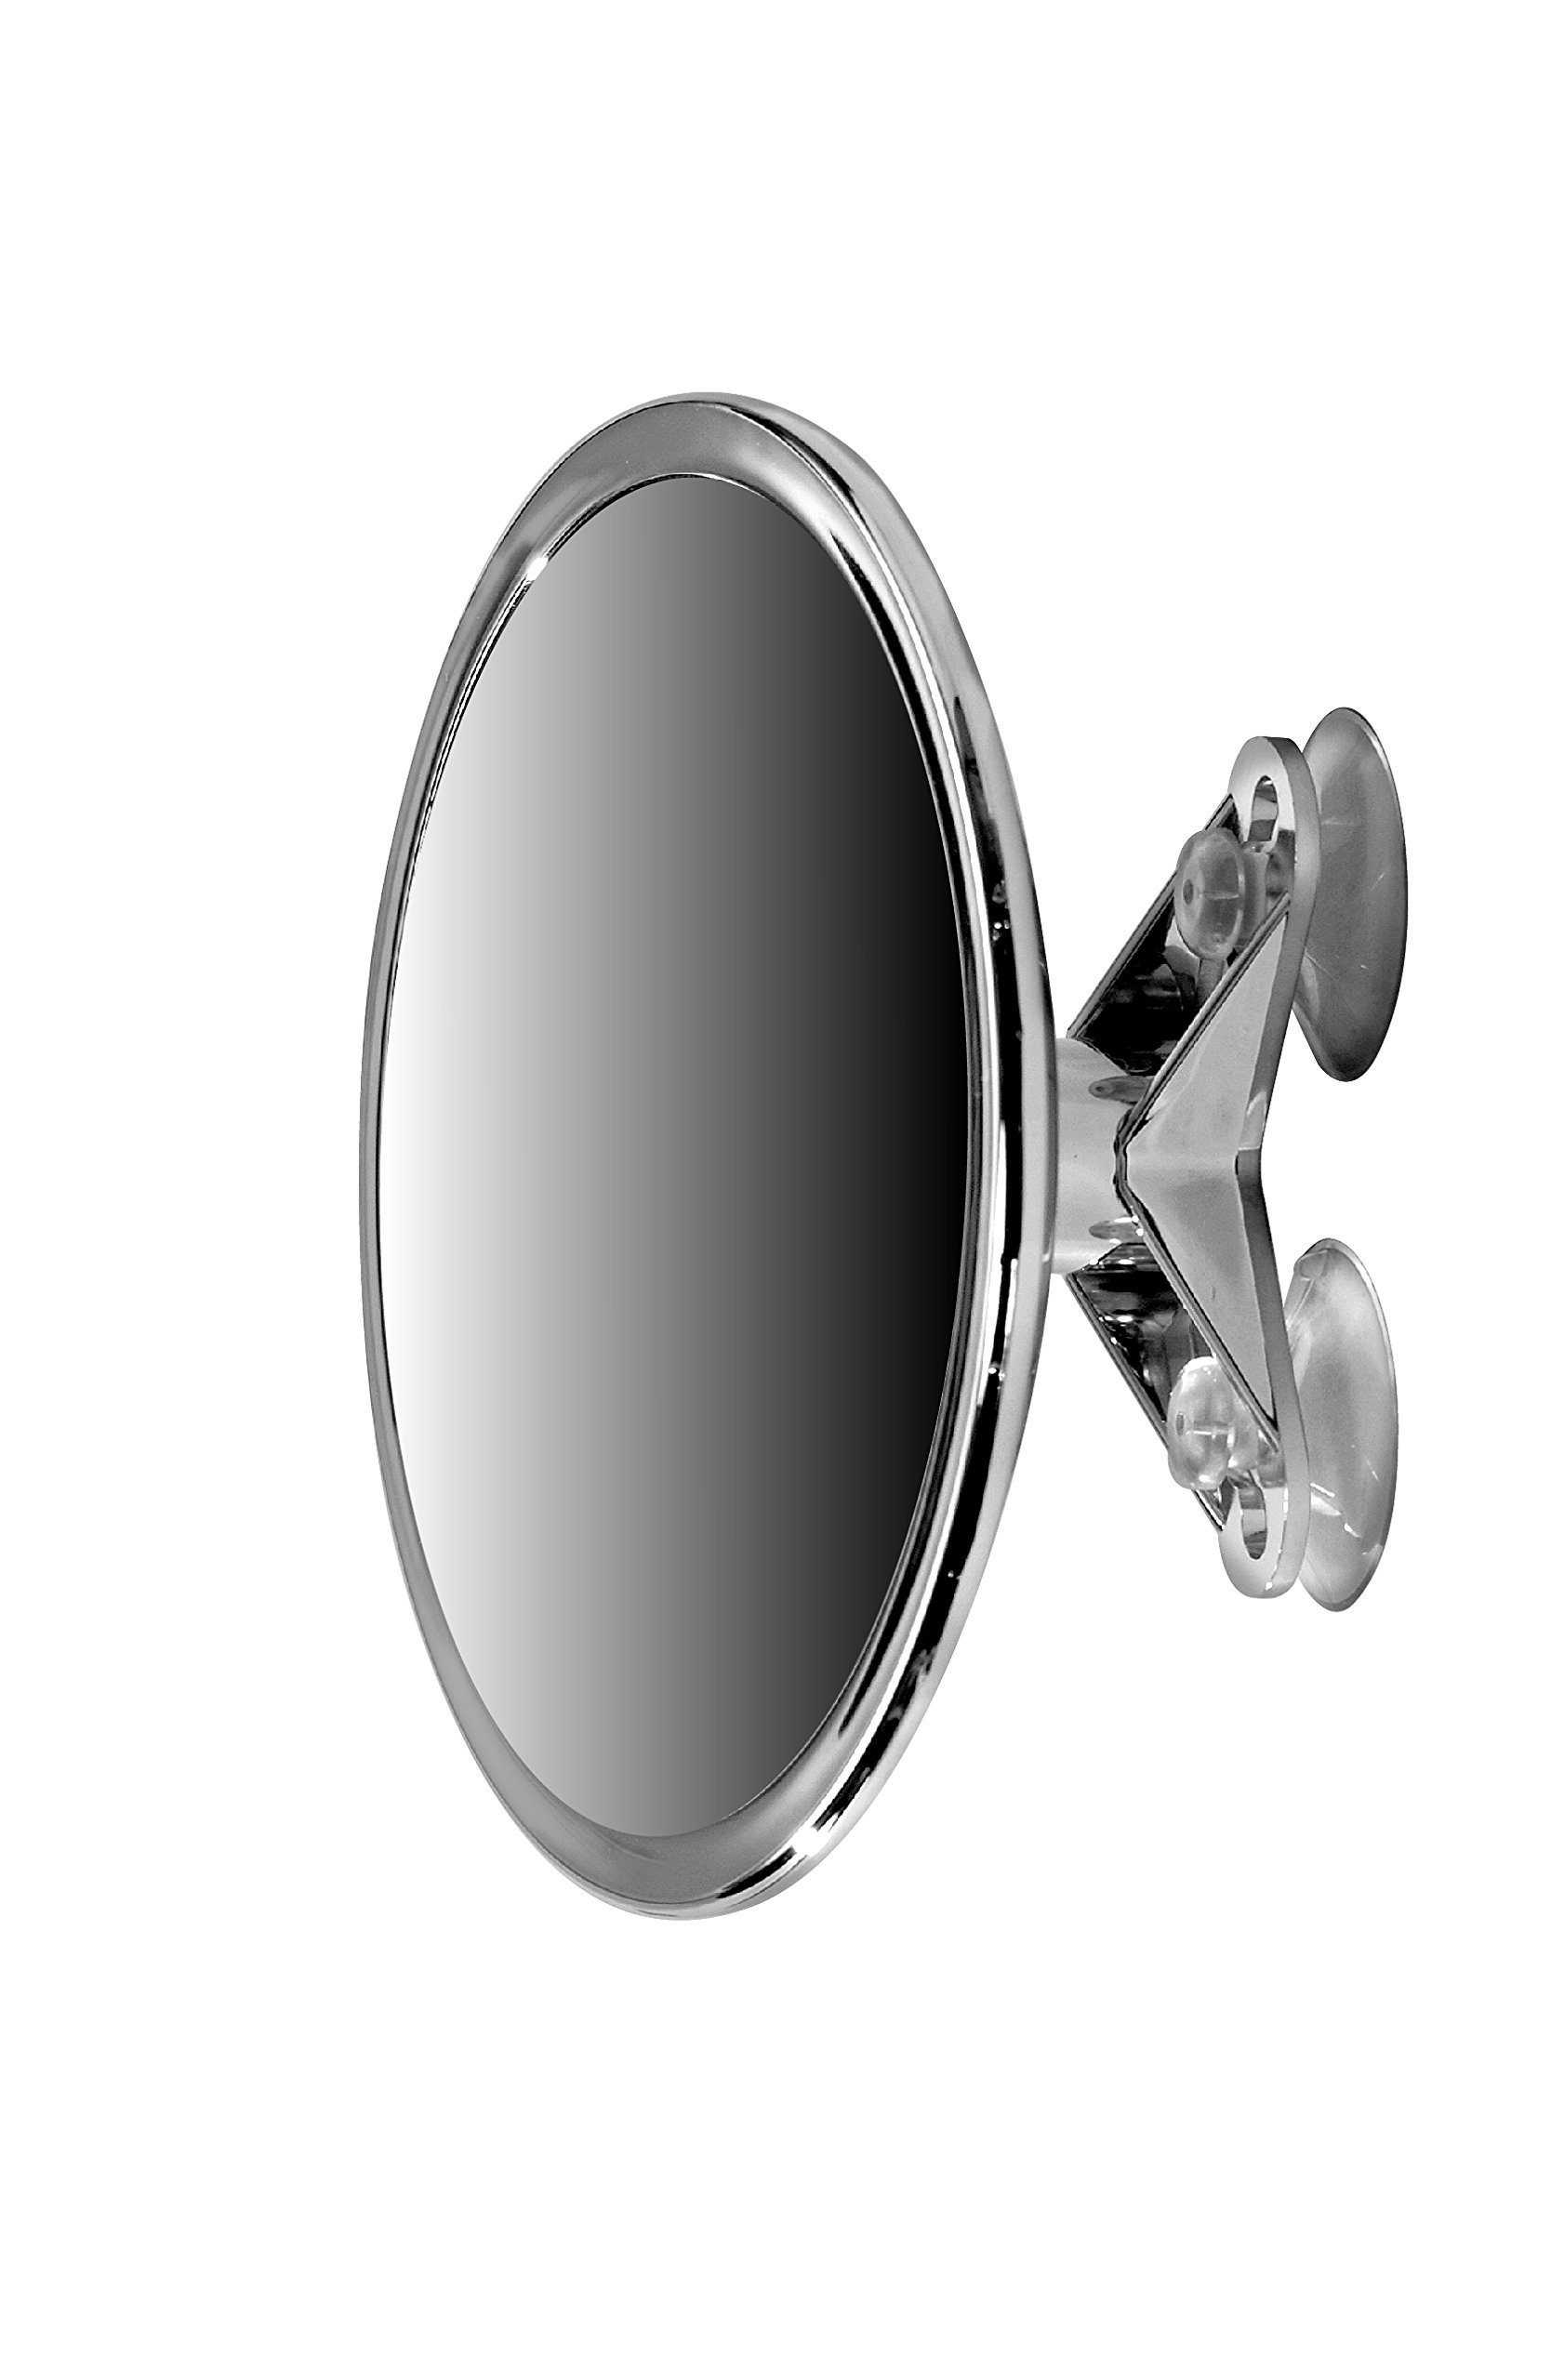 6'' Suction Mount Mirror - 5X Magnifying Vanity Makeup Mirror with 3-Point Super Suction, Pivoting, Rotating and Locking Suction